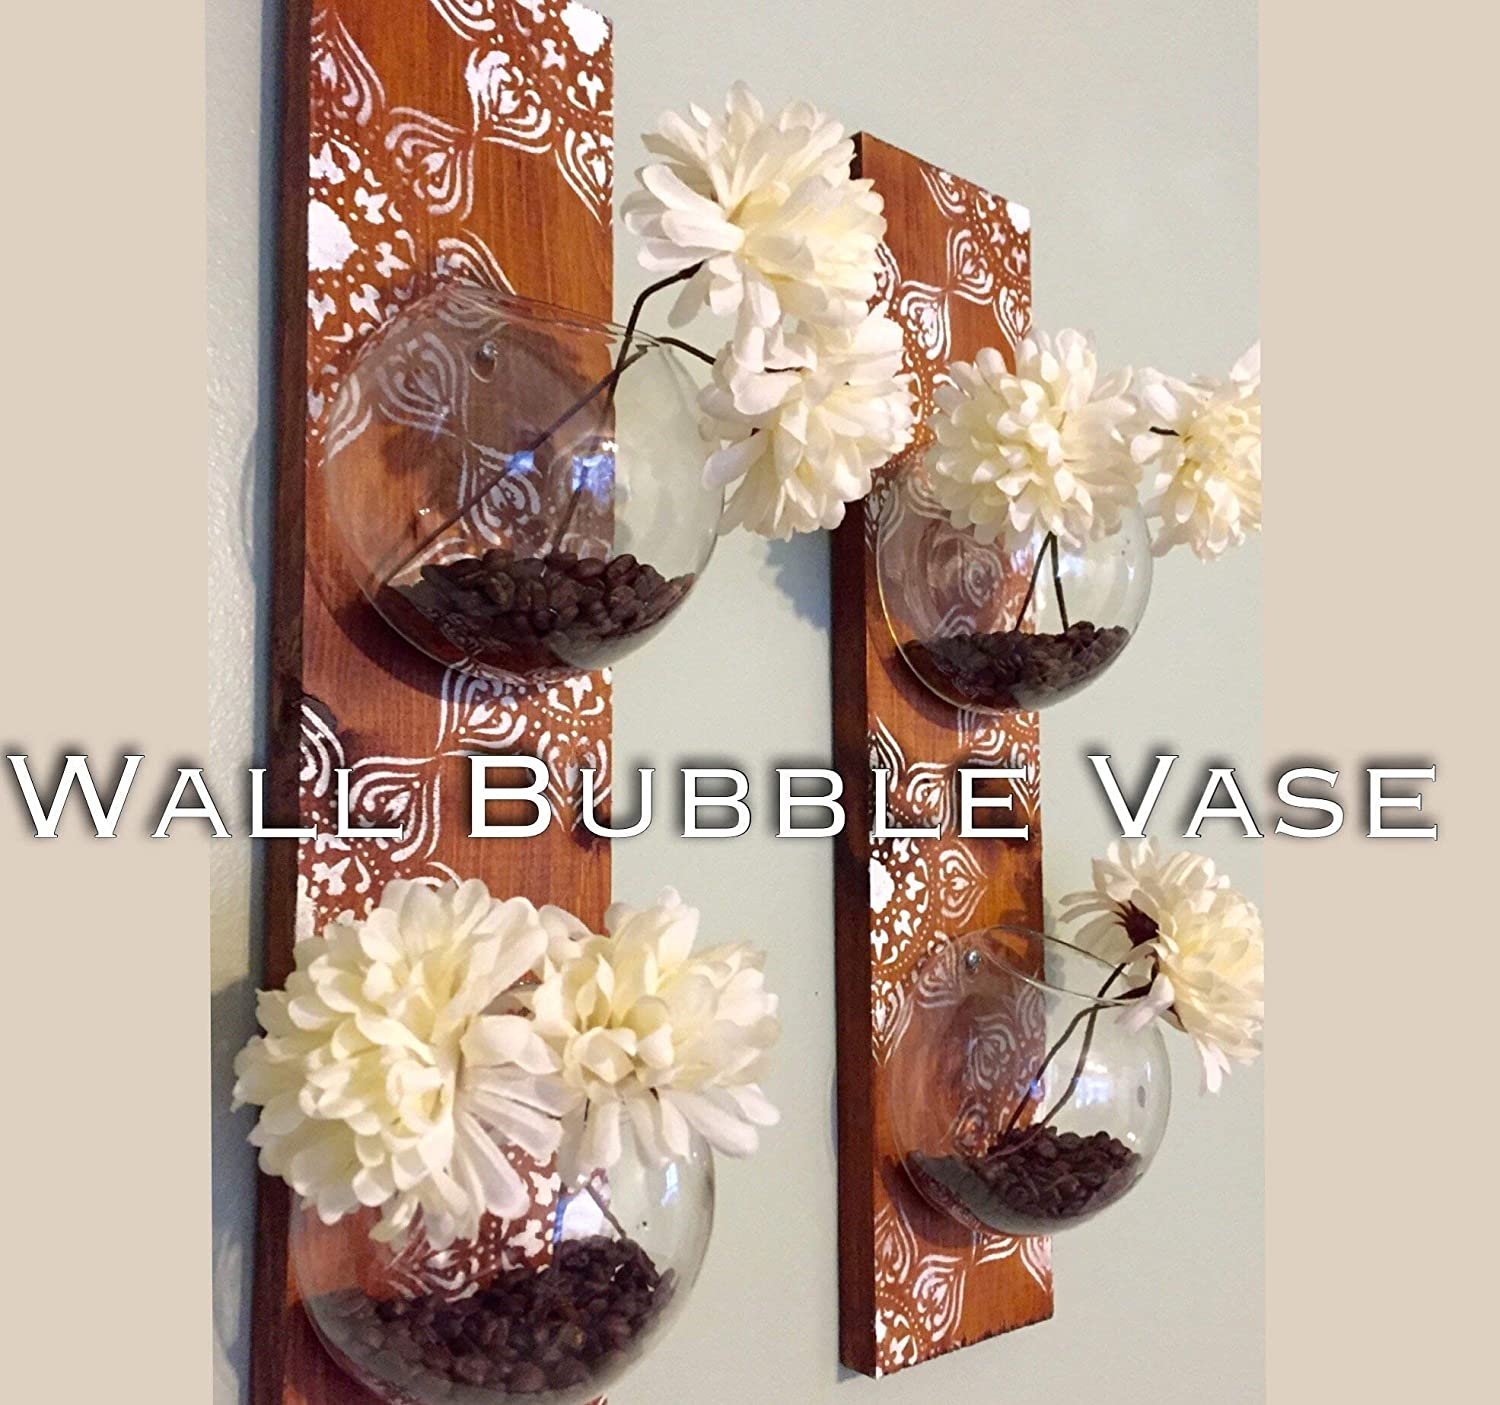 Home Oniship Art Deco Wall Bubble Vase Terrarium